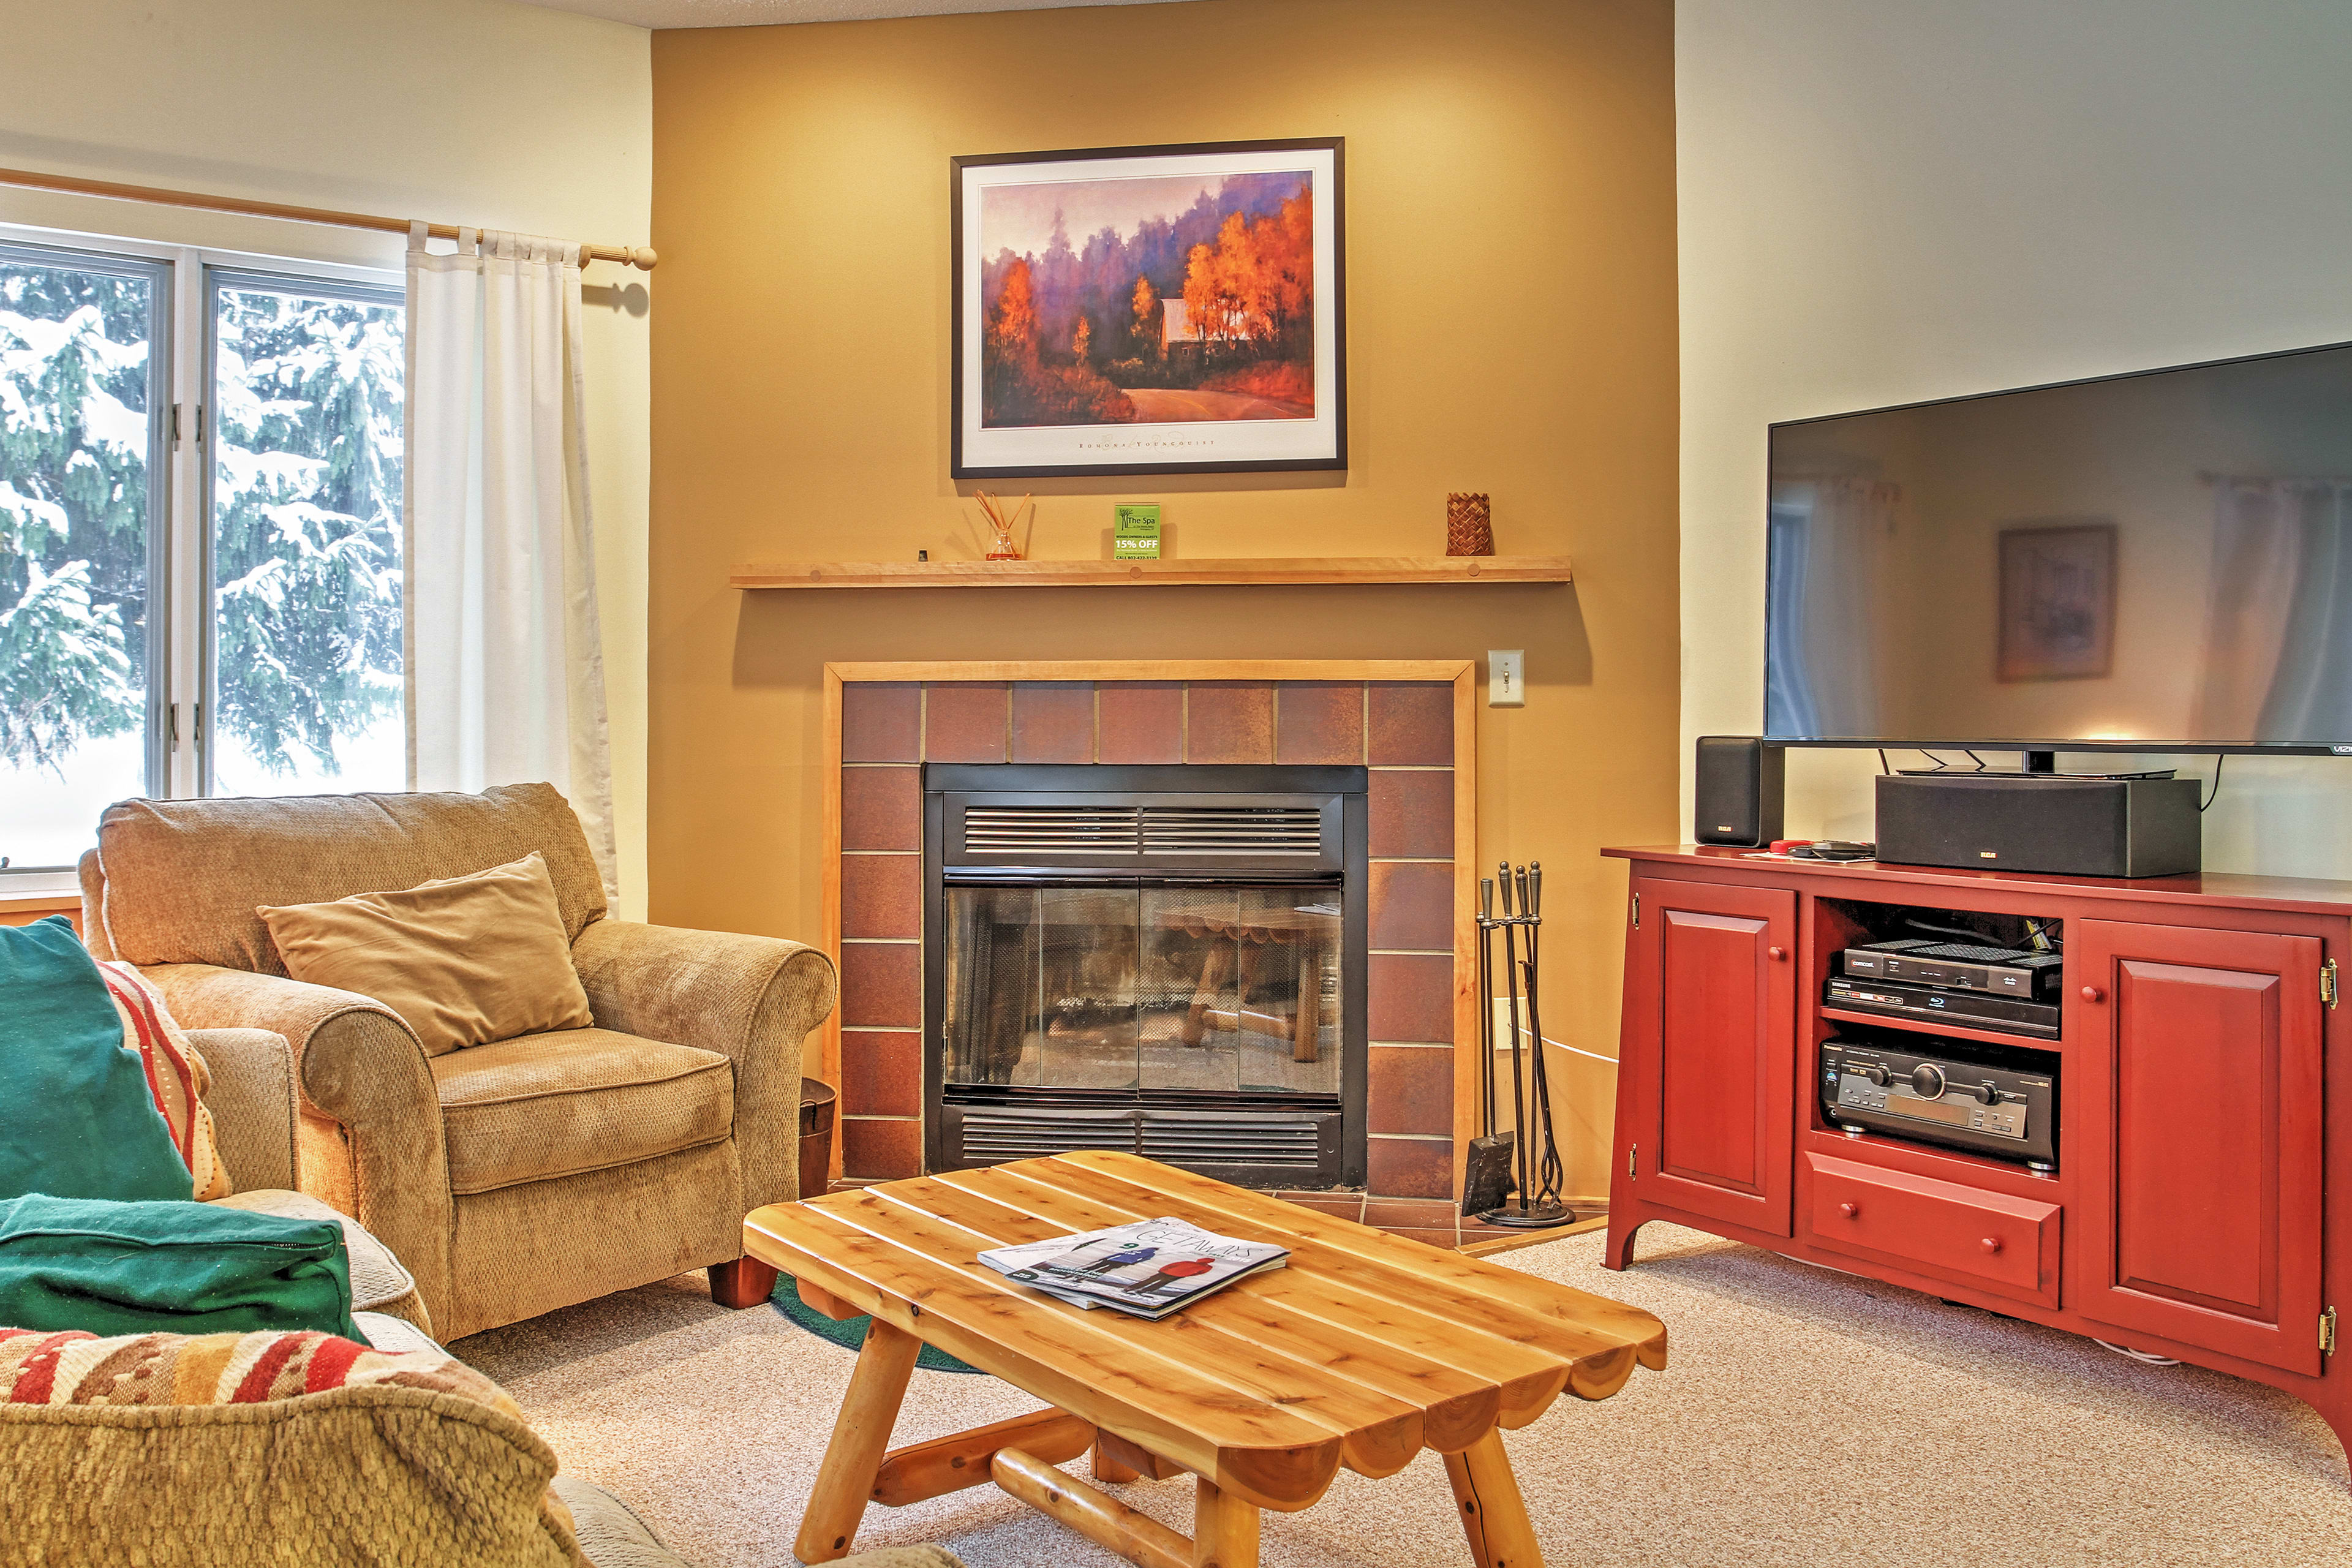 Watch a show on the HDTV with HBO access near the wood-burning fireplace.